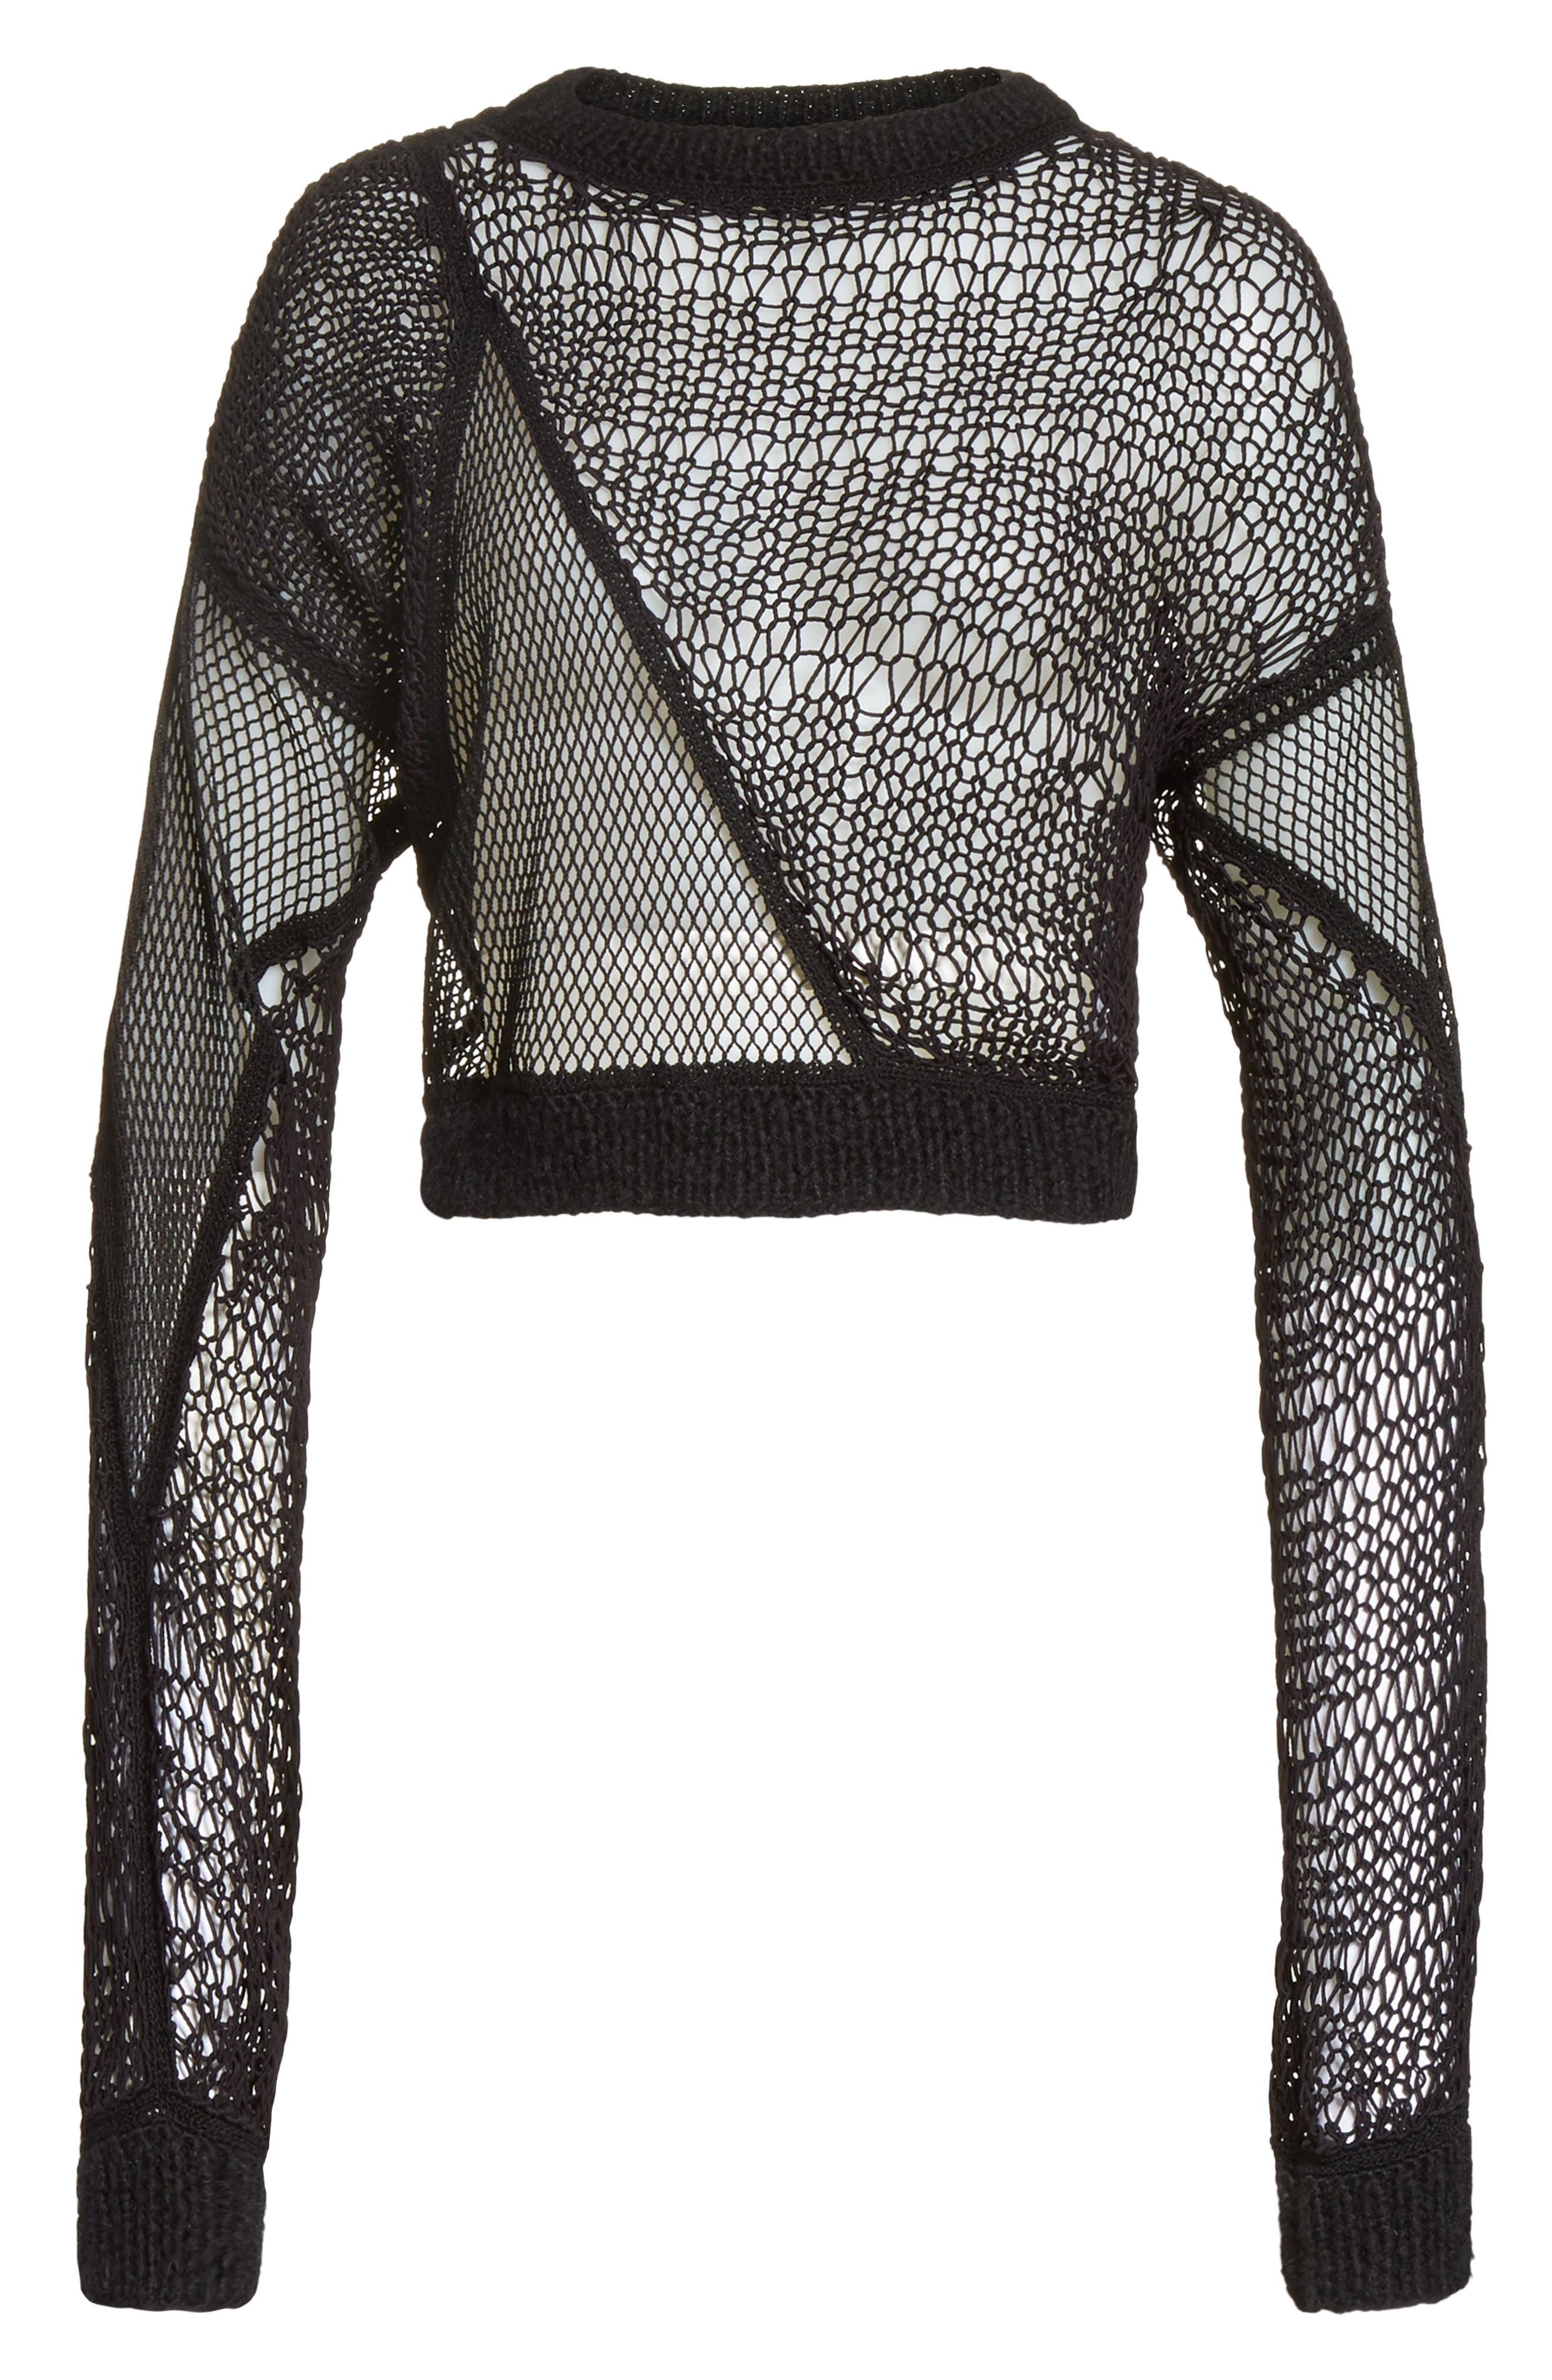 Siouxie Crew Fishnet Patchwork Sweater,                             Alternate thumbnail 6, color,                             Black